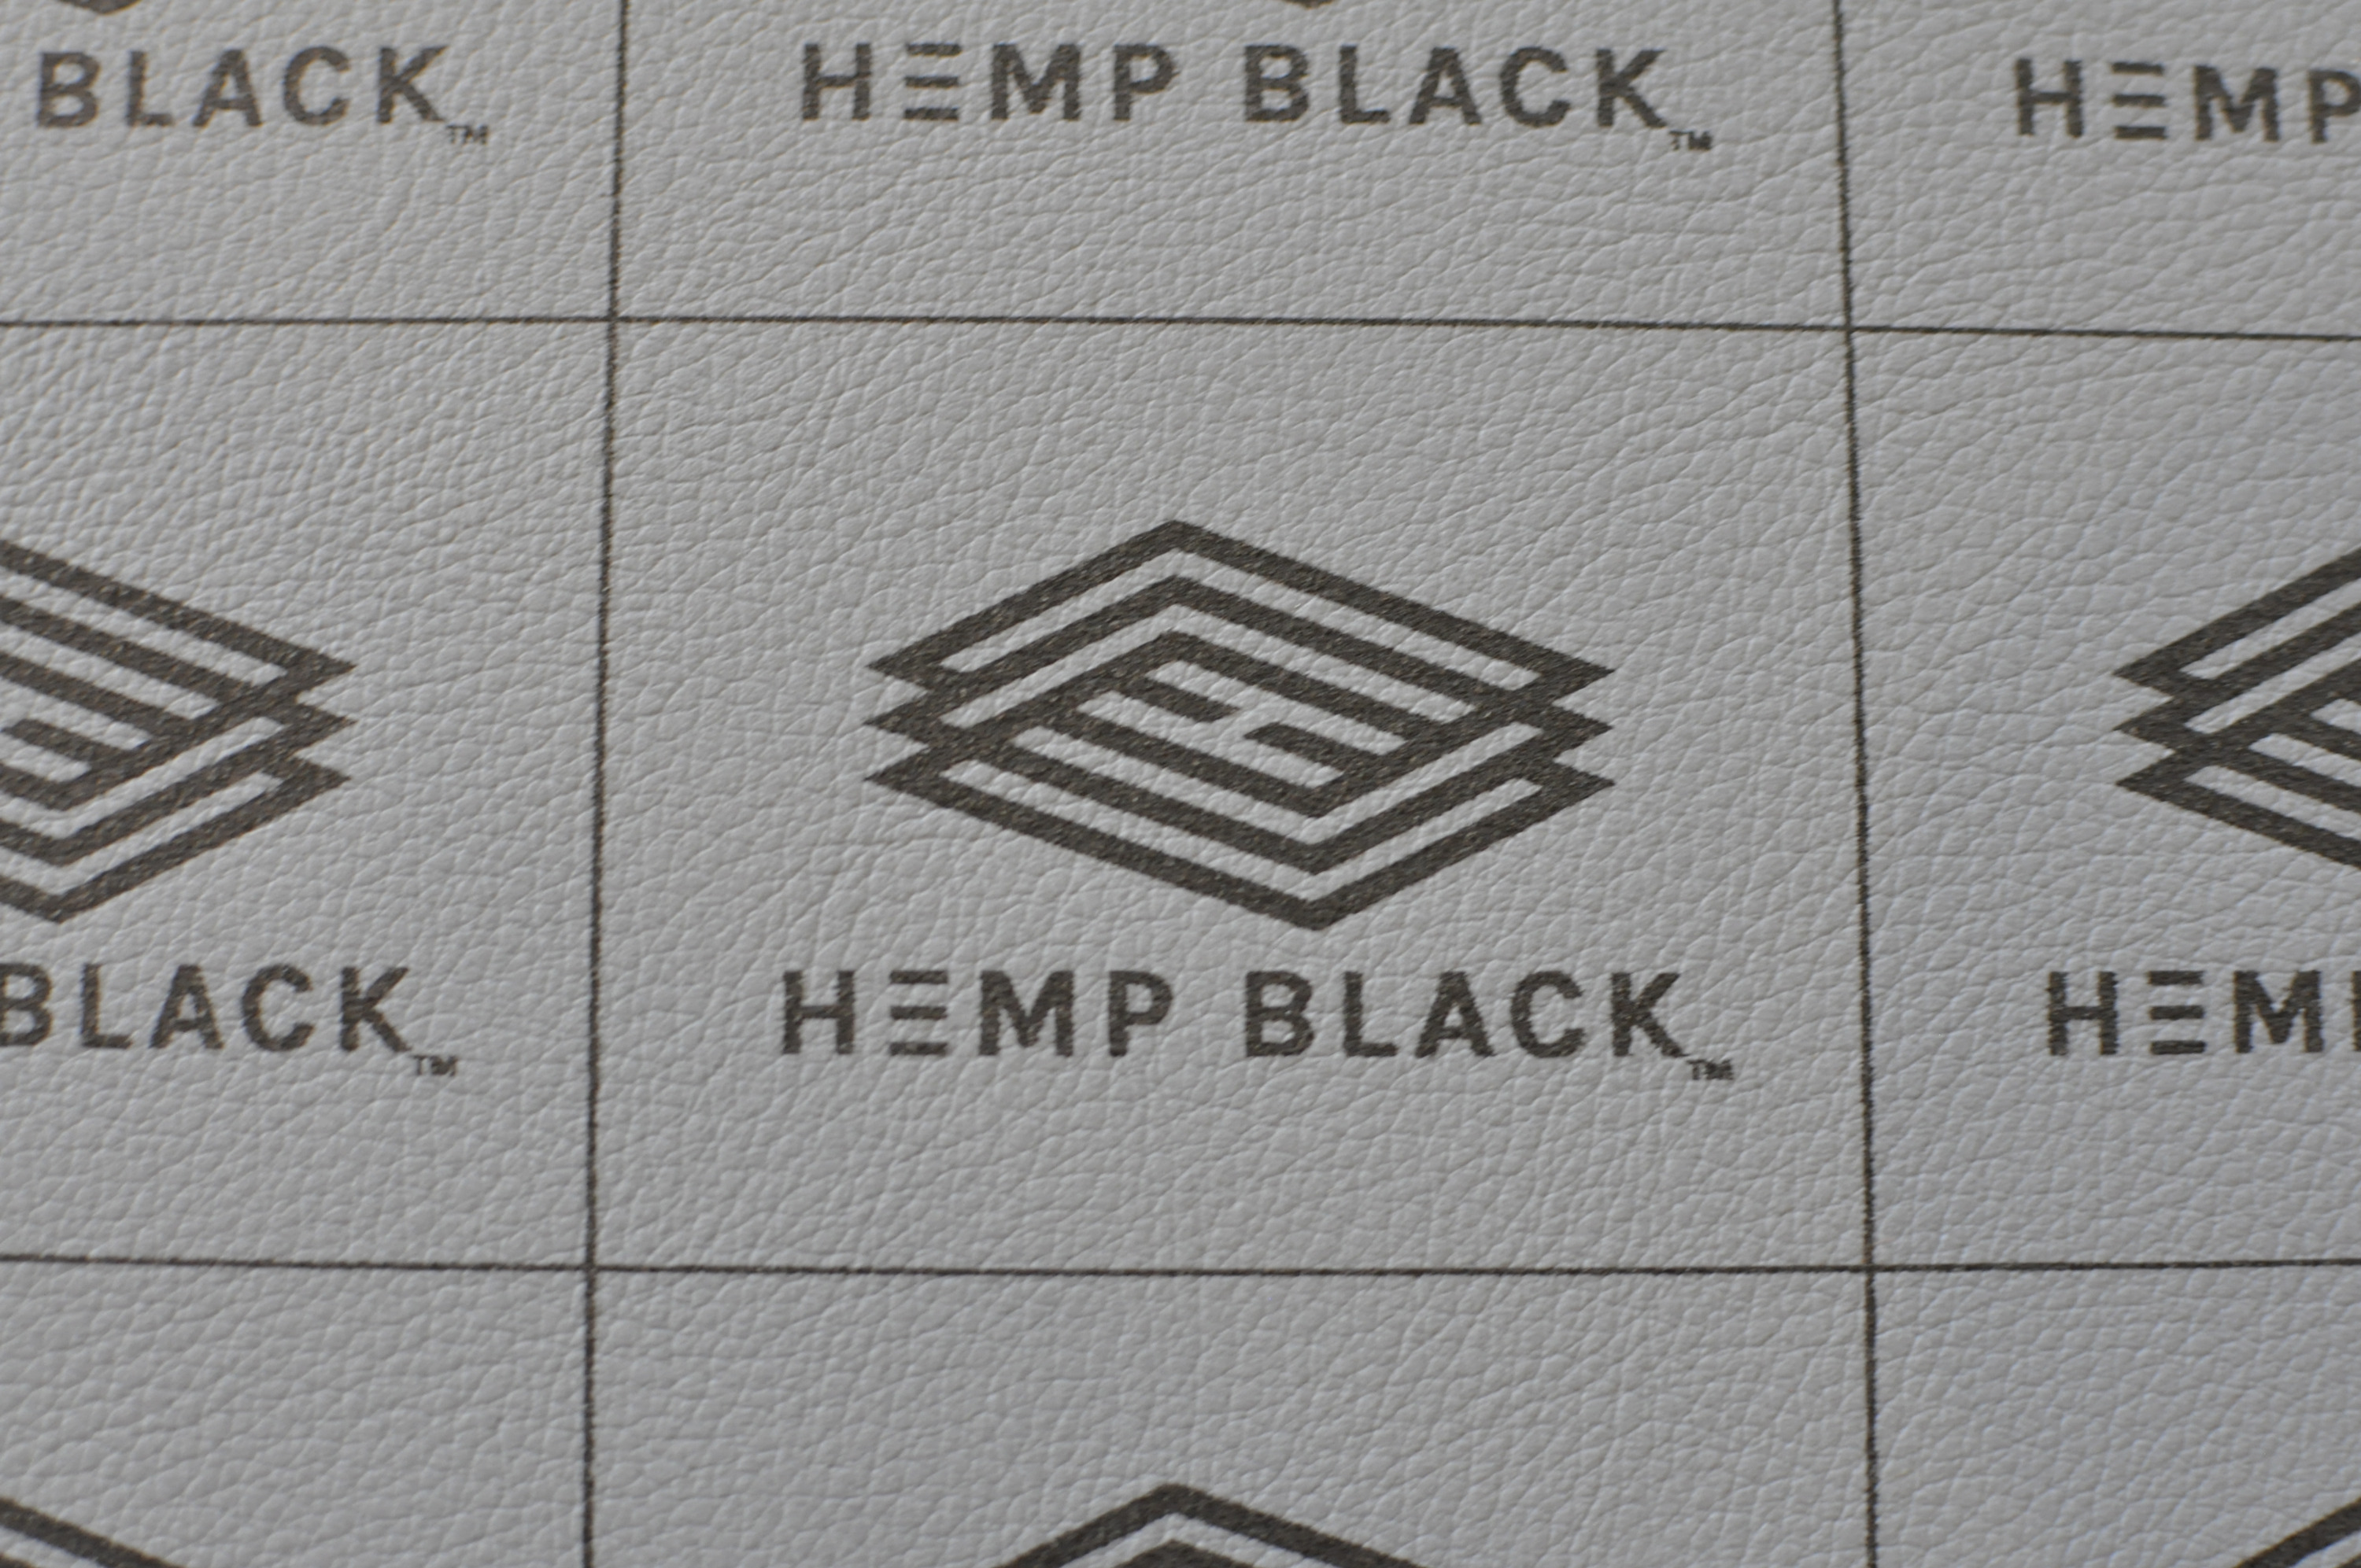 HEMP BLACK / ink printed on HEMP BLACK / hide leather alternative